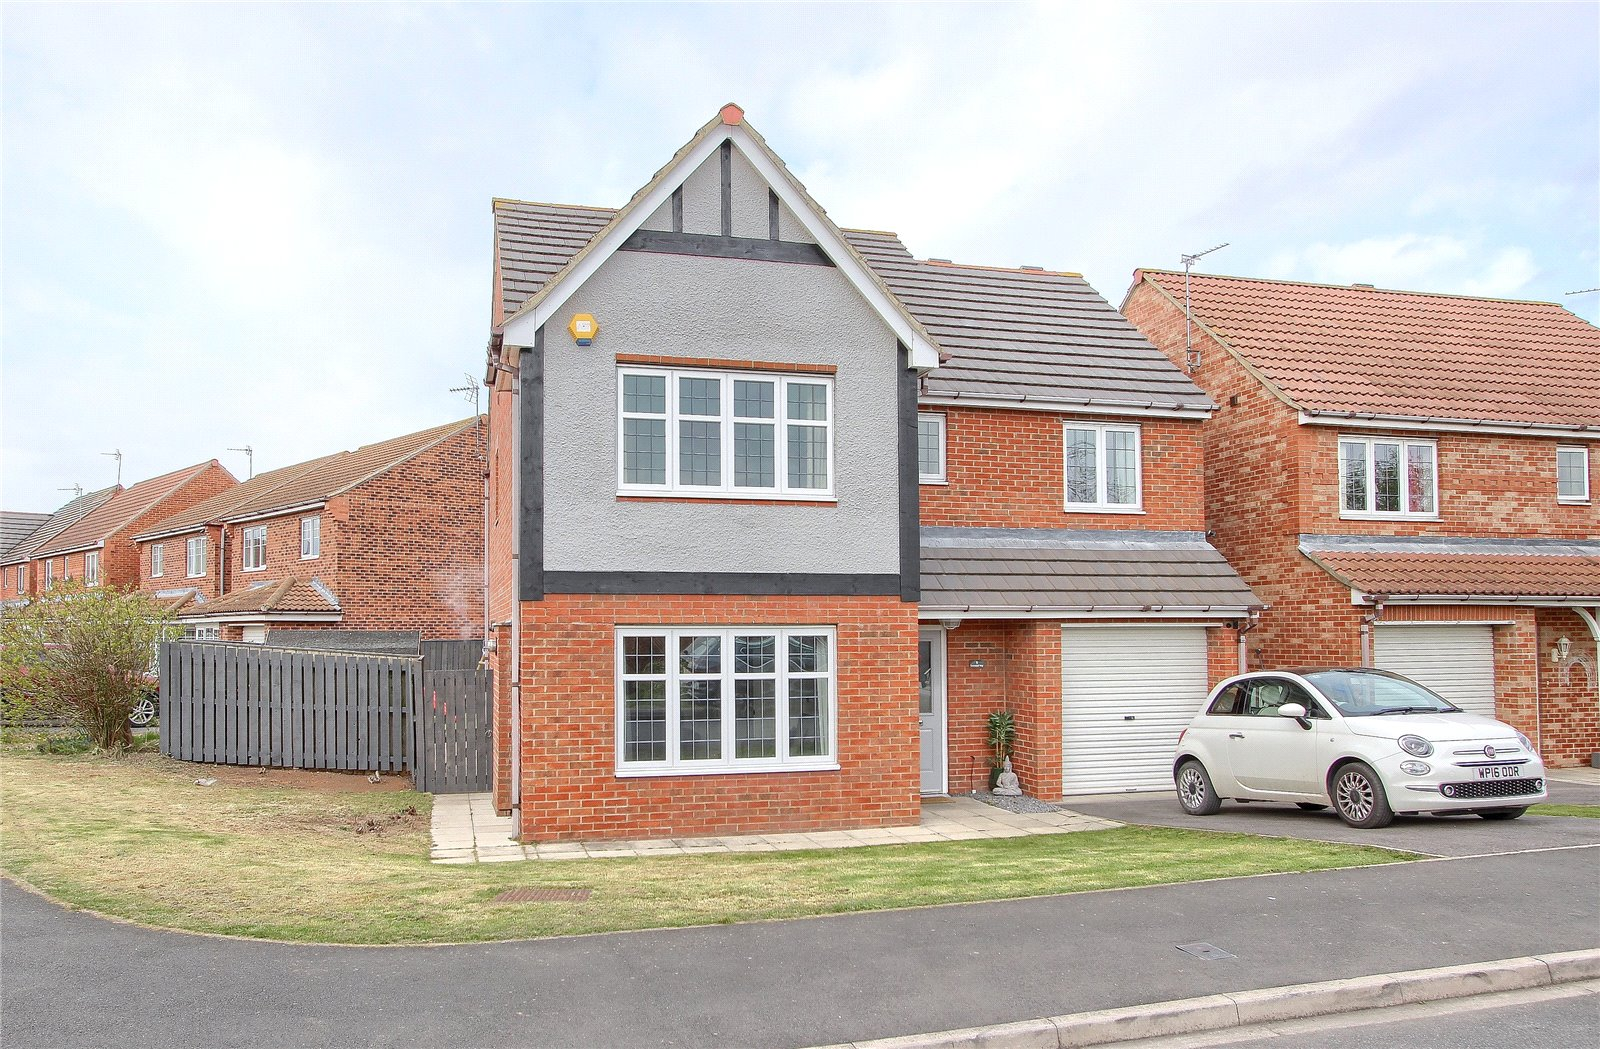 4 bed house for sale in Lowestoft Way, Redcar  - Property Image 1